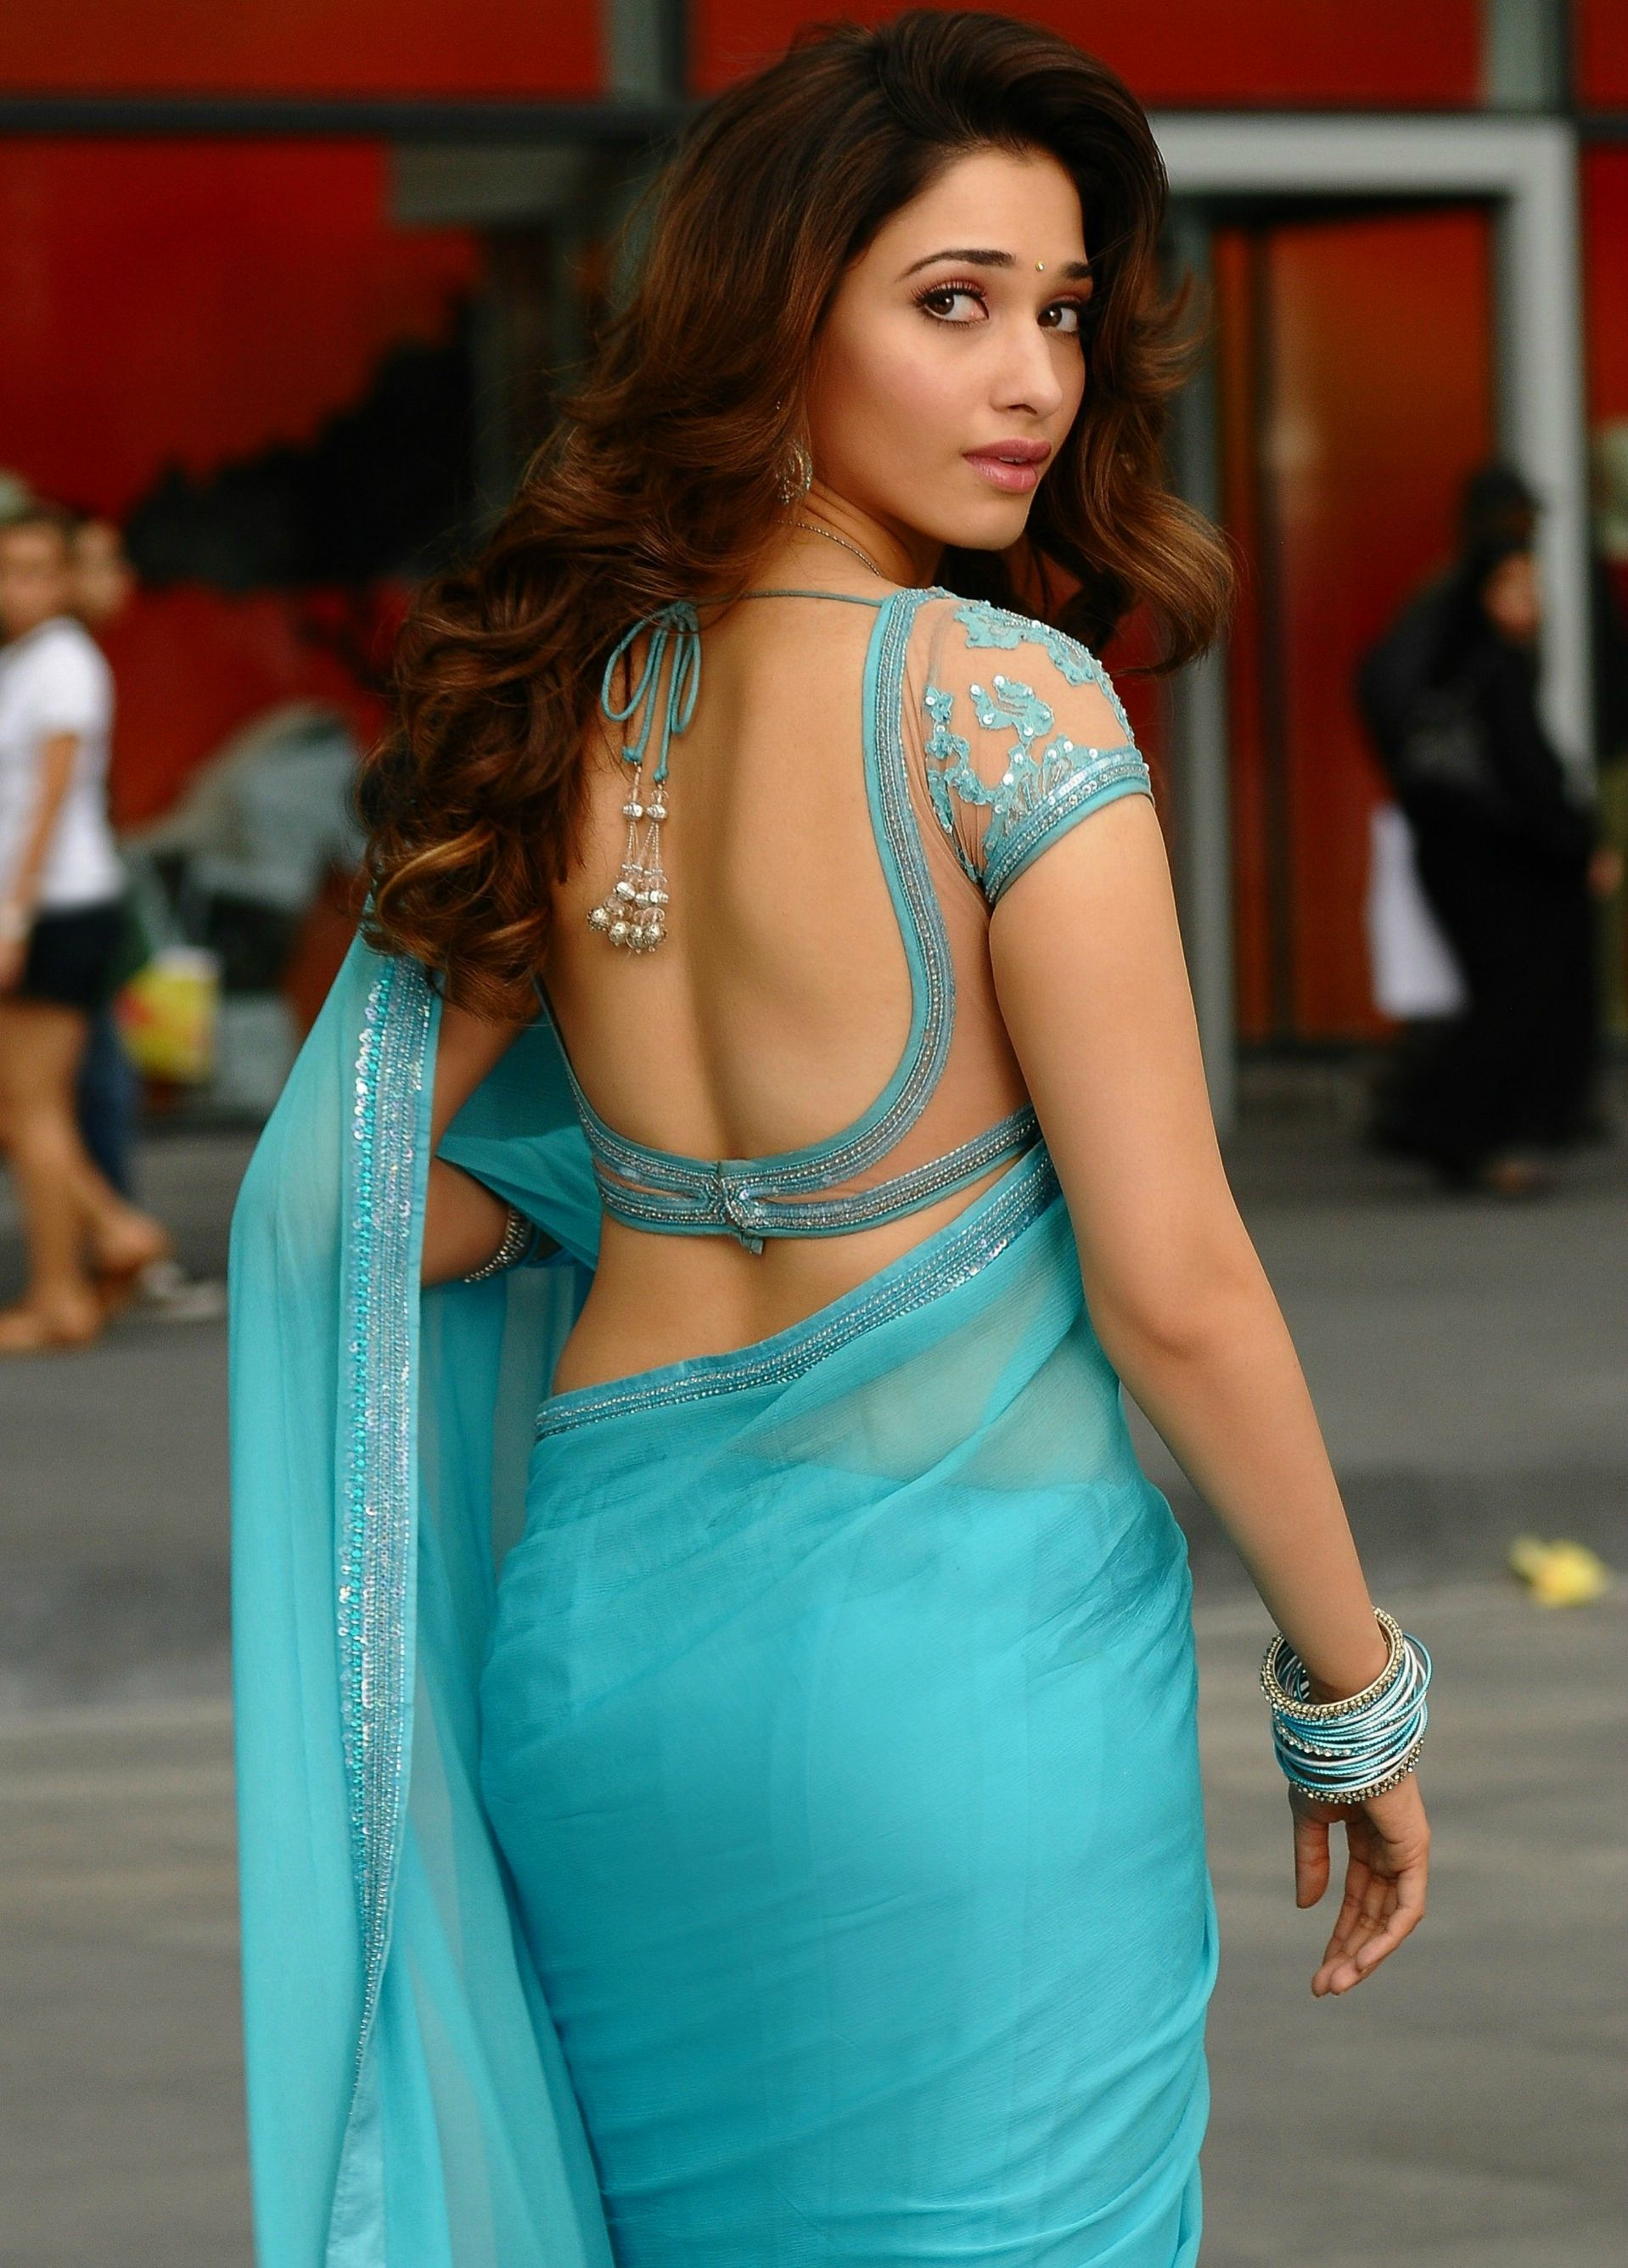 Tamanna Smooth Back and Navel show + other HQ Unwatermarked pics ...